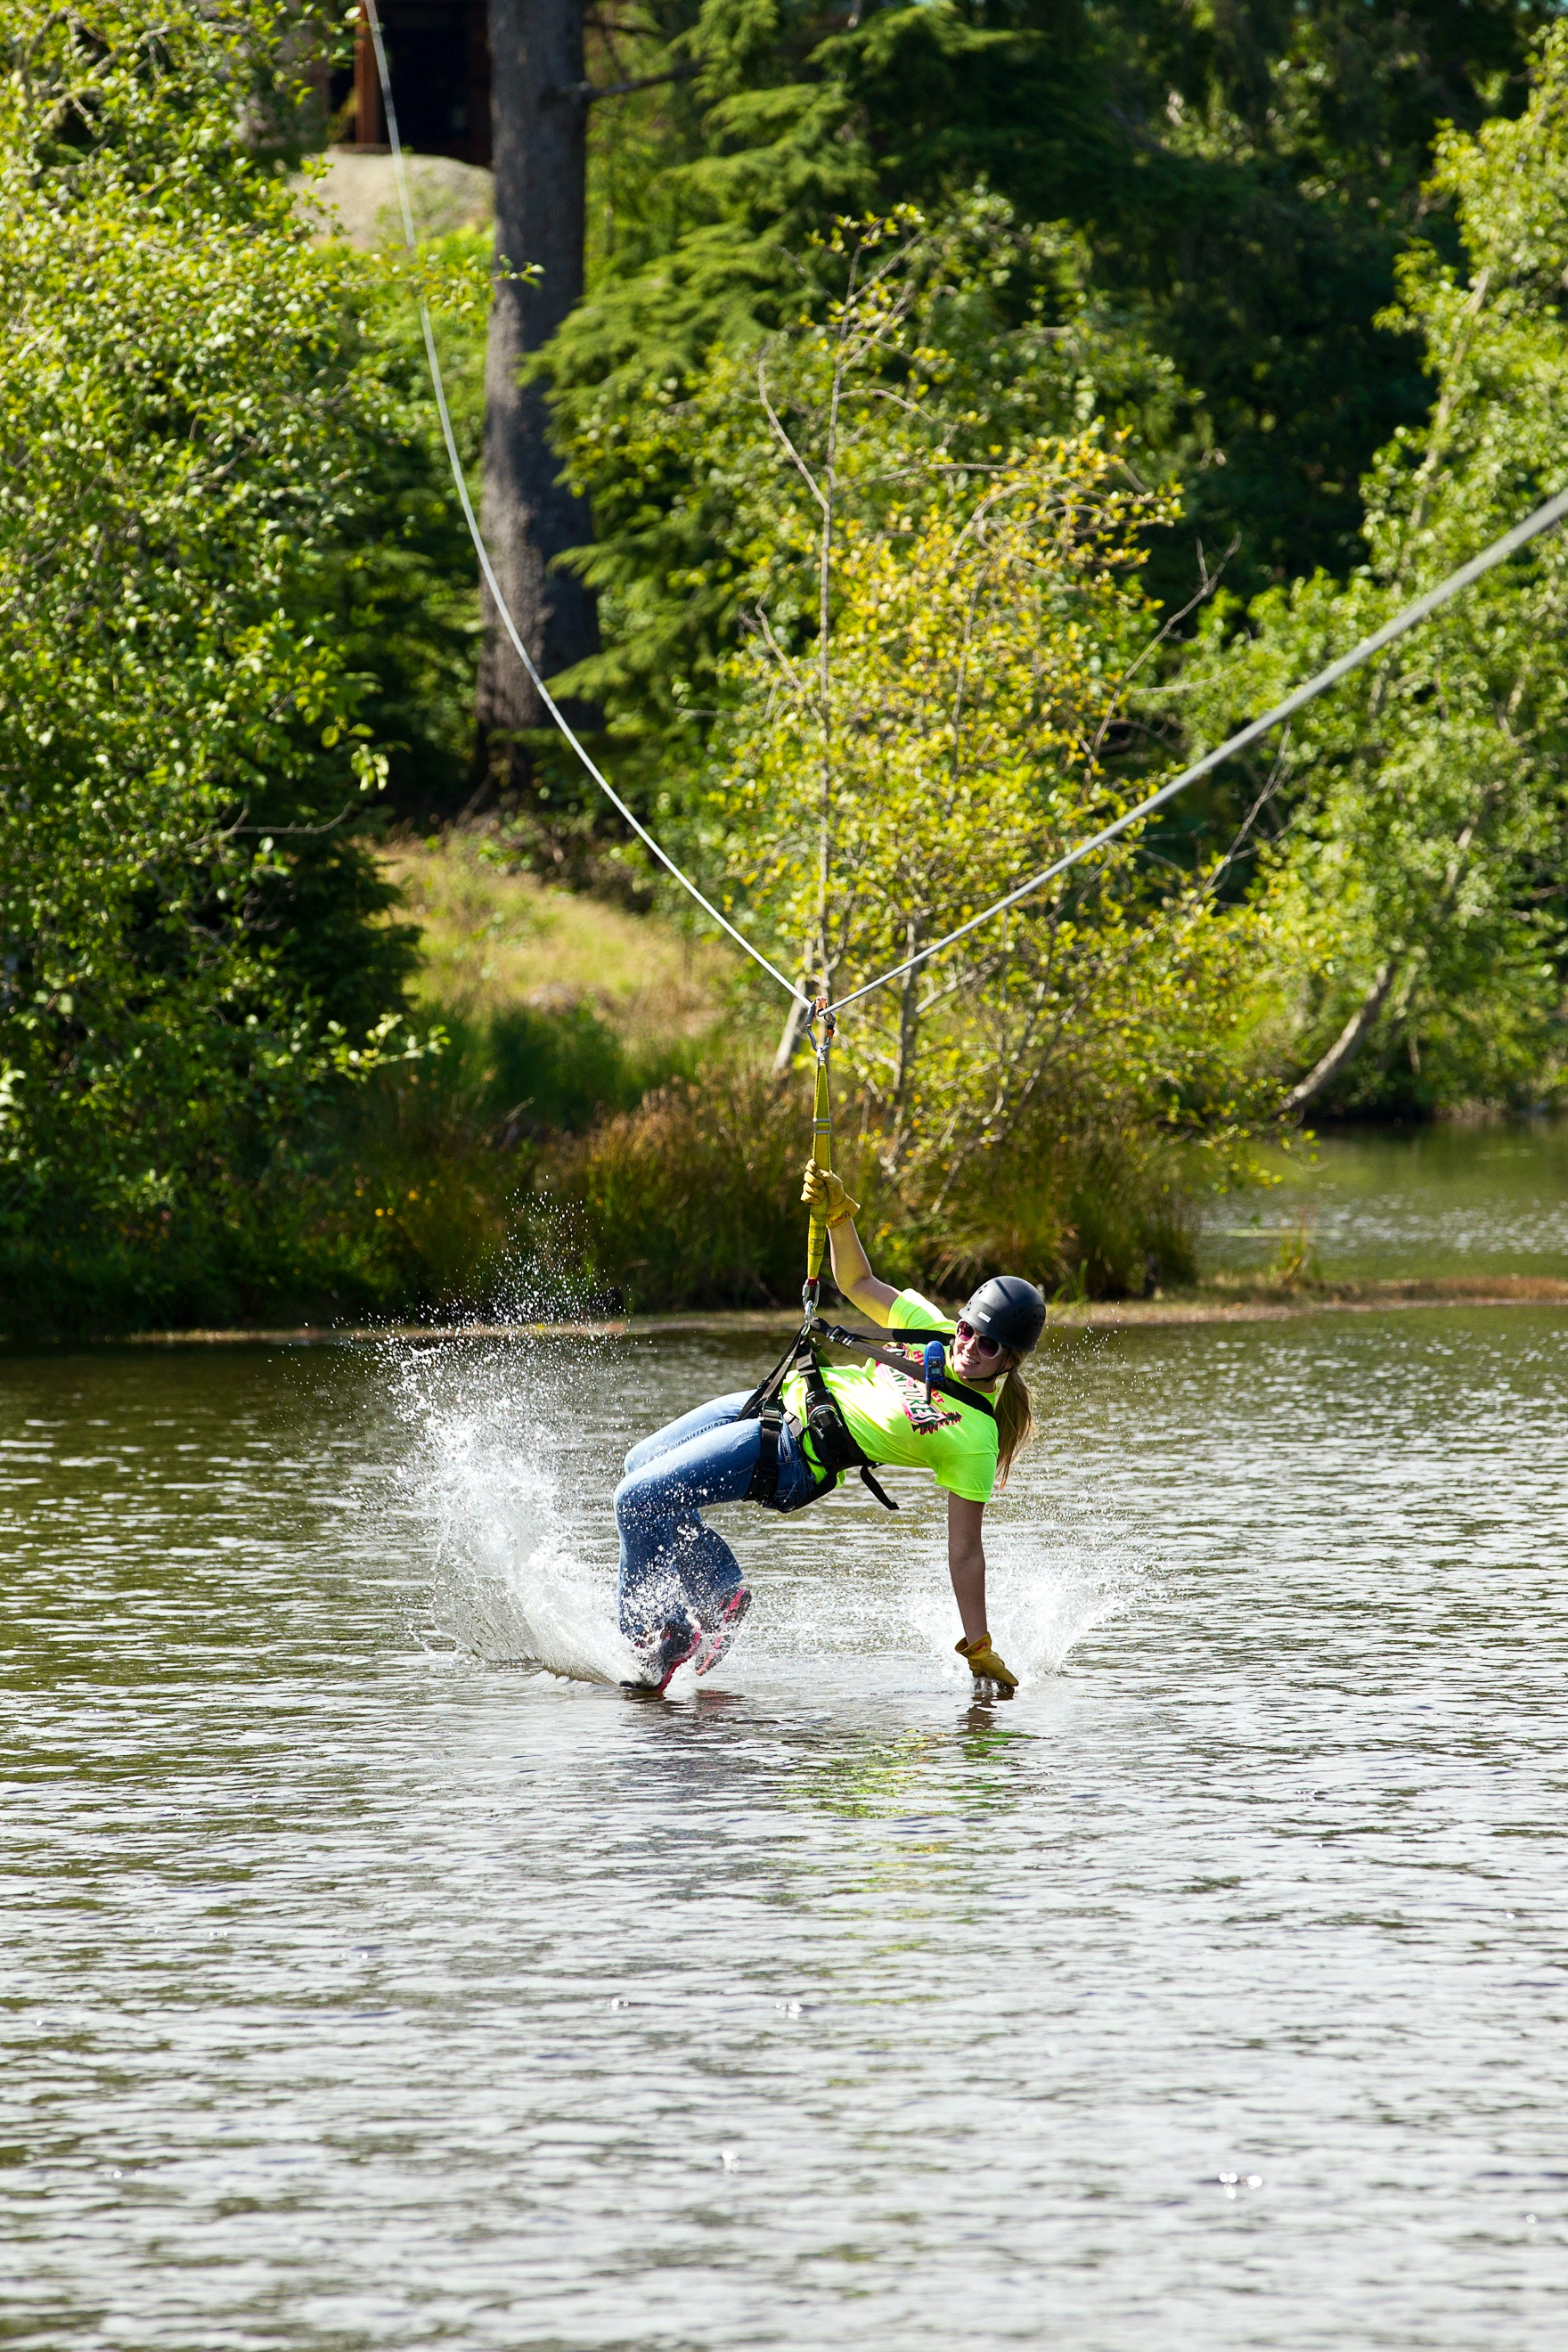 A woman skims over the water on the zipline